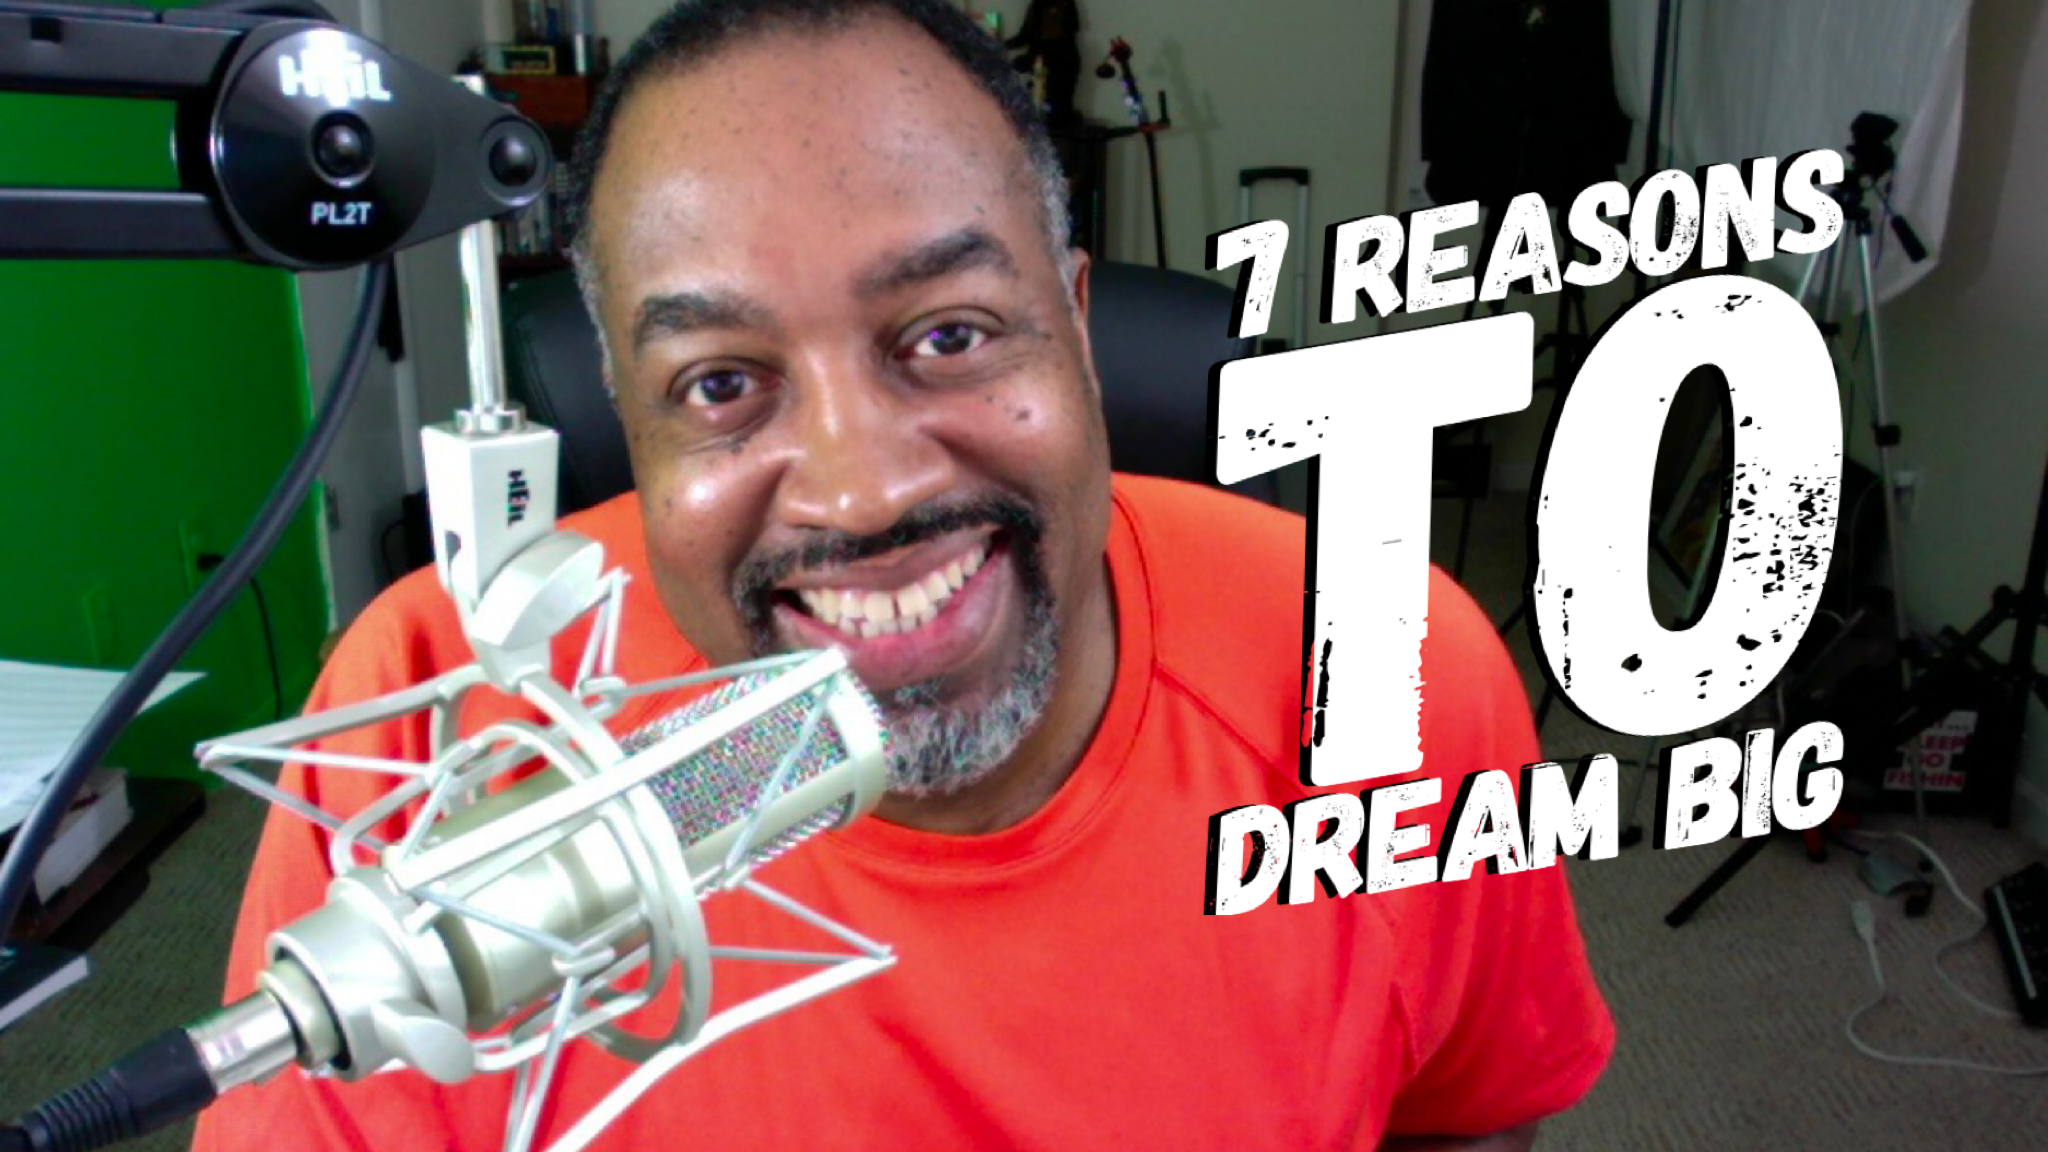 Artwork for 7 Reasons to Dream Big and 7 Ways to Start.